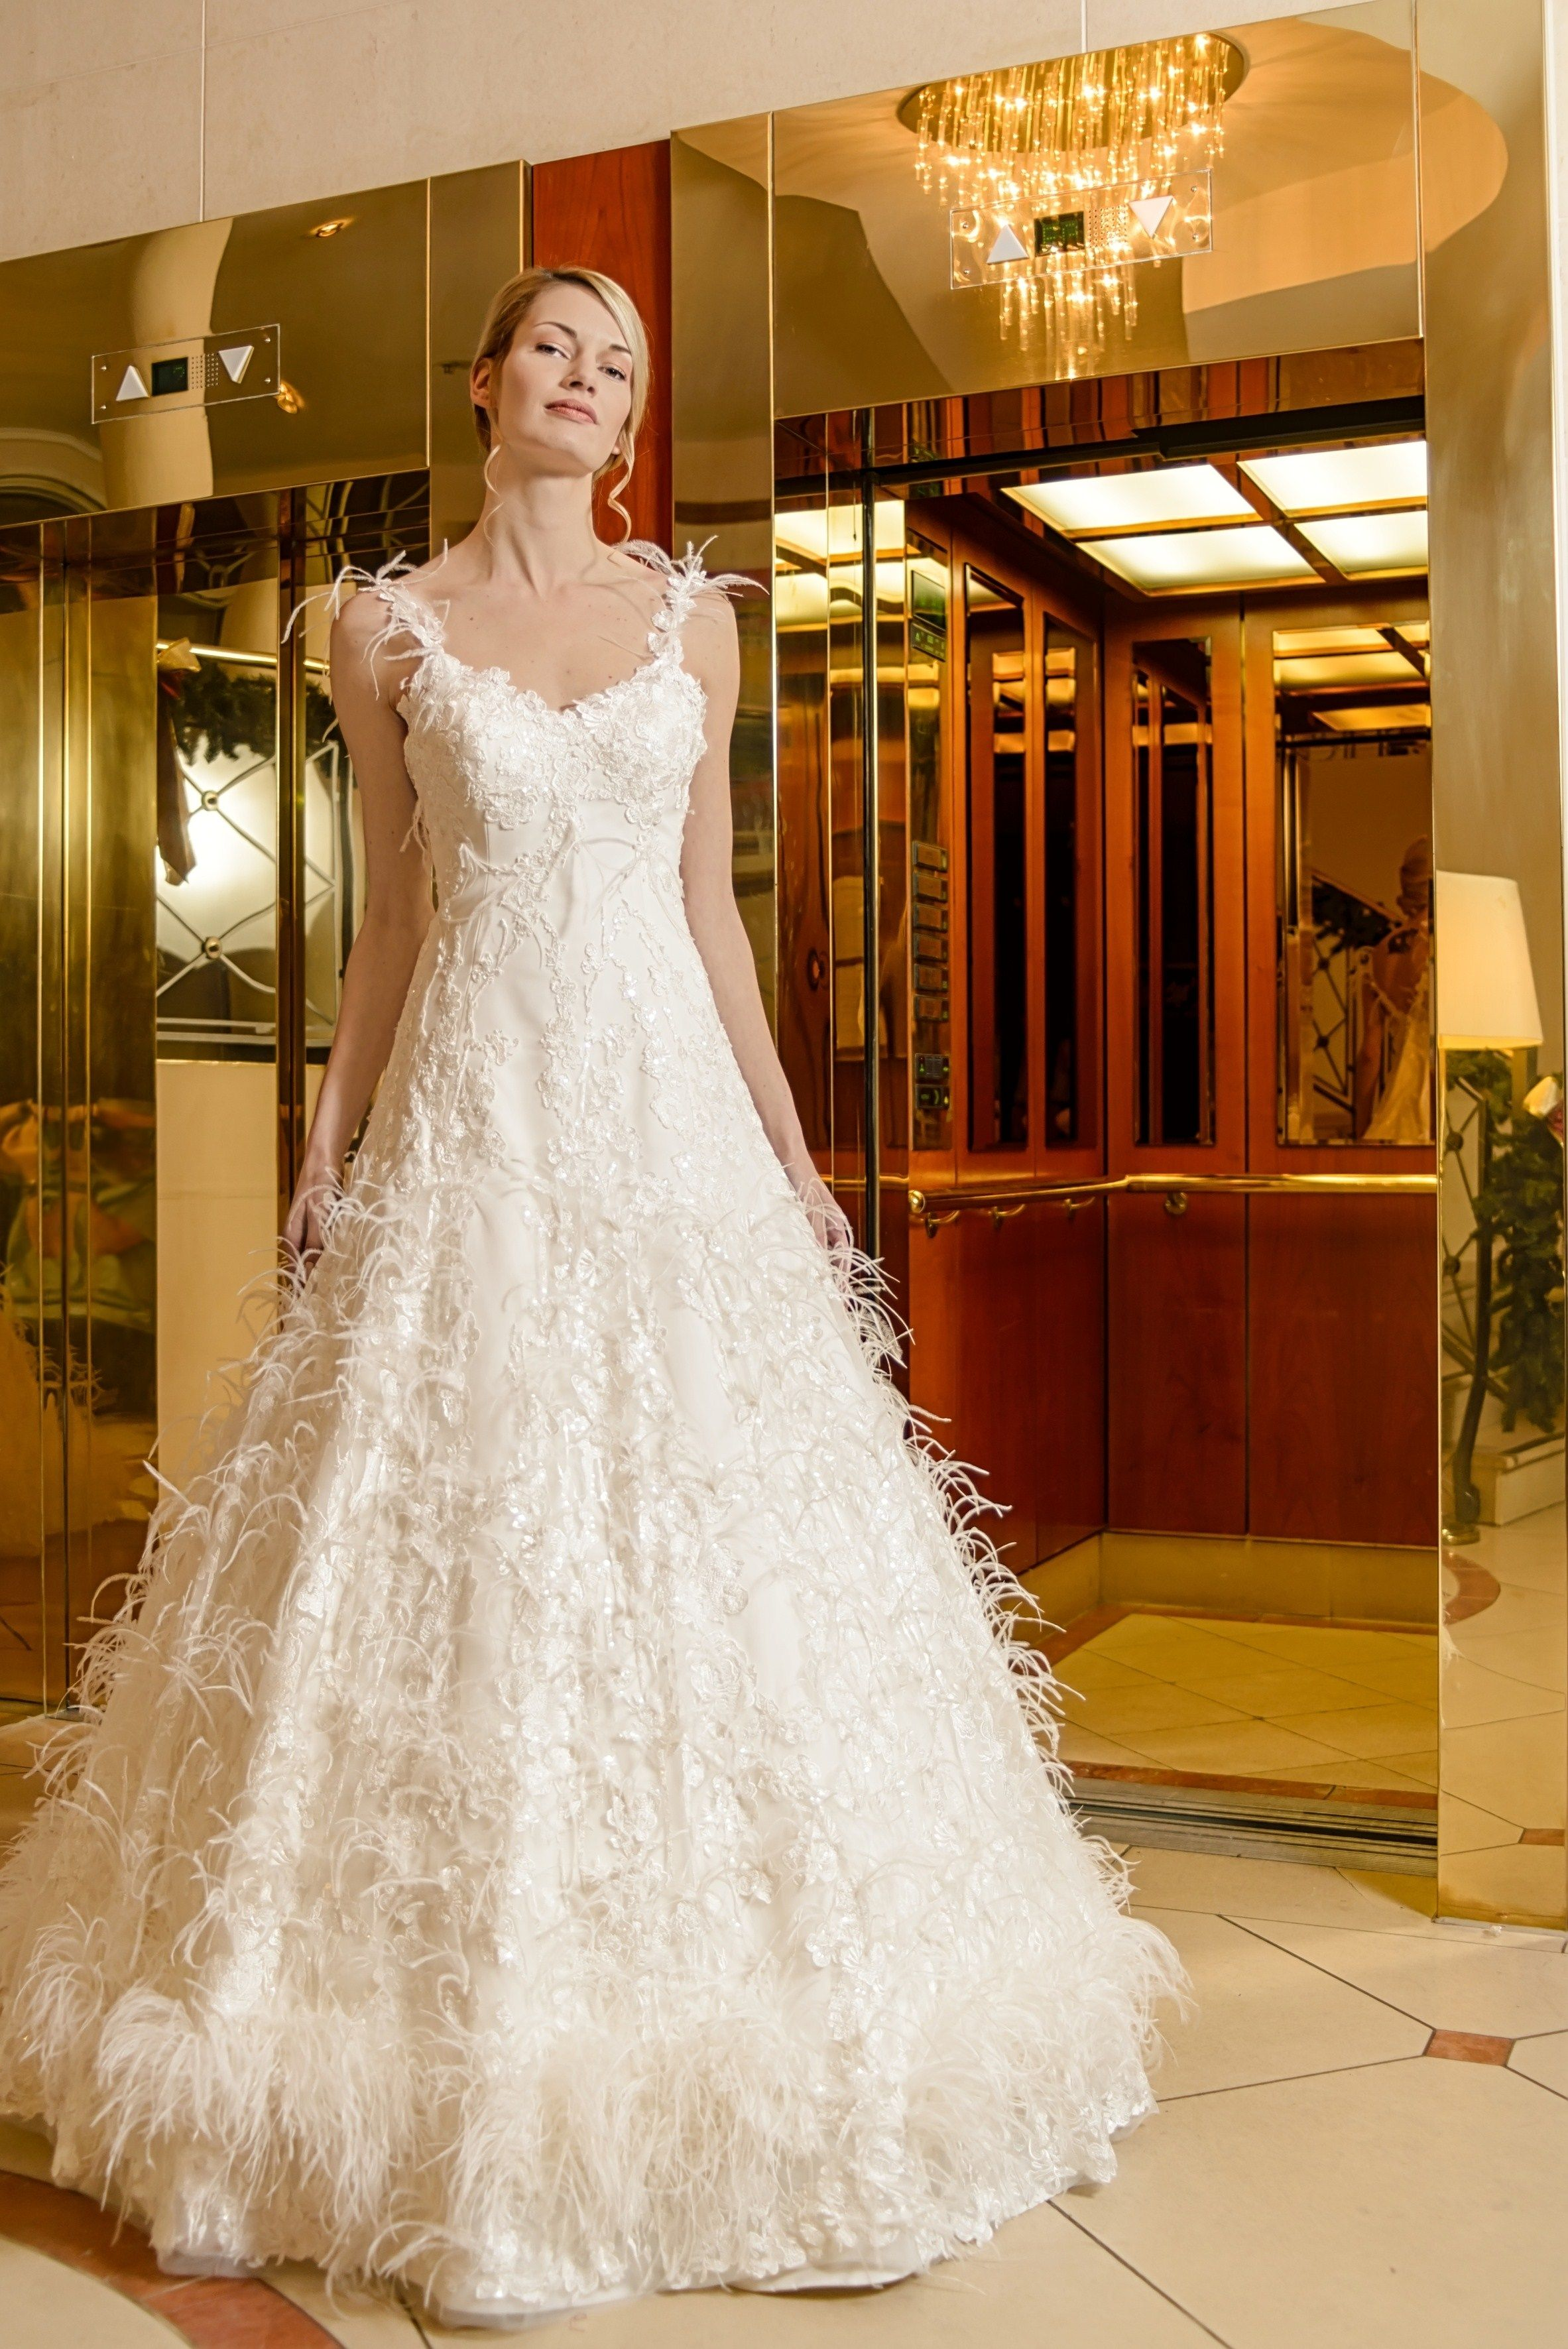 Majestic Bridal Dress empire style with feathers. Extravagantes